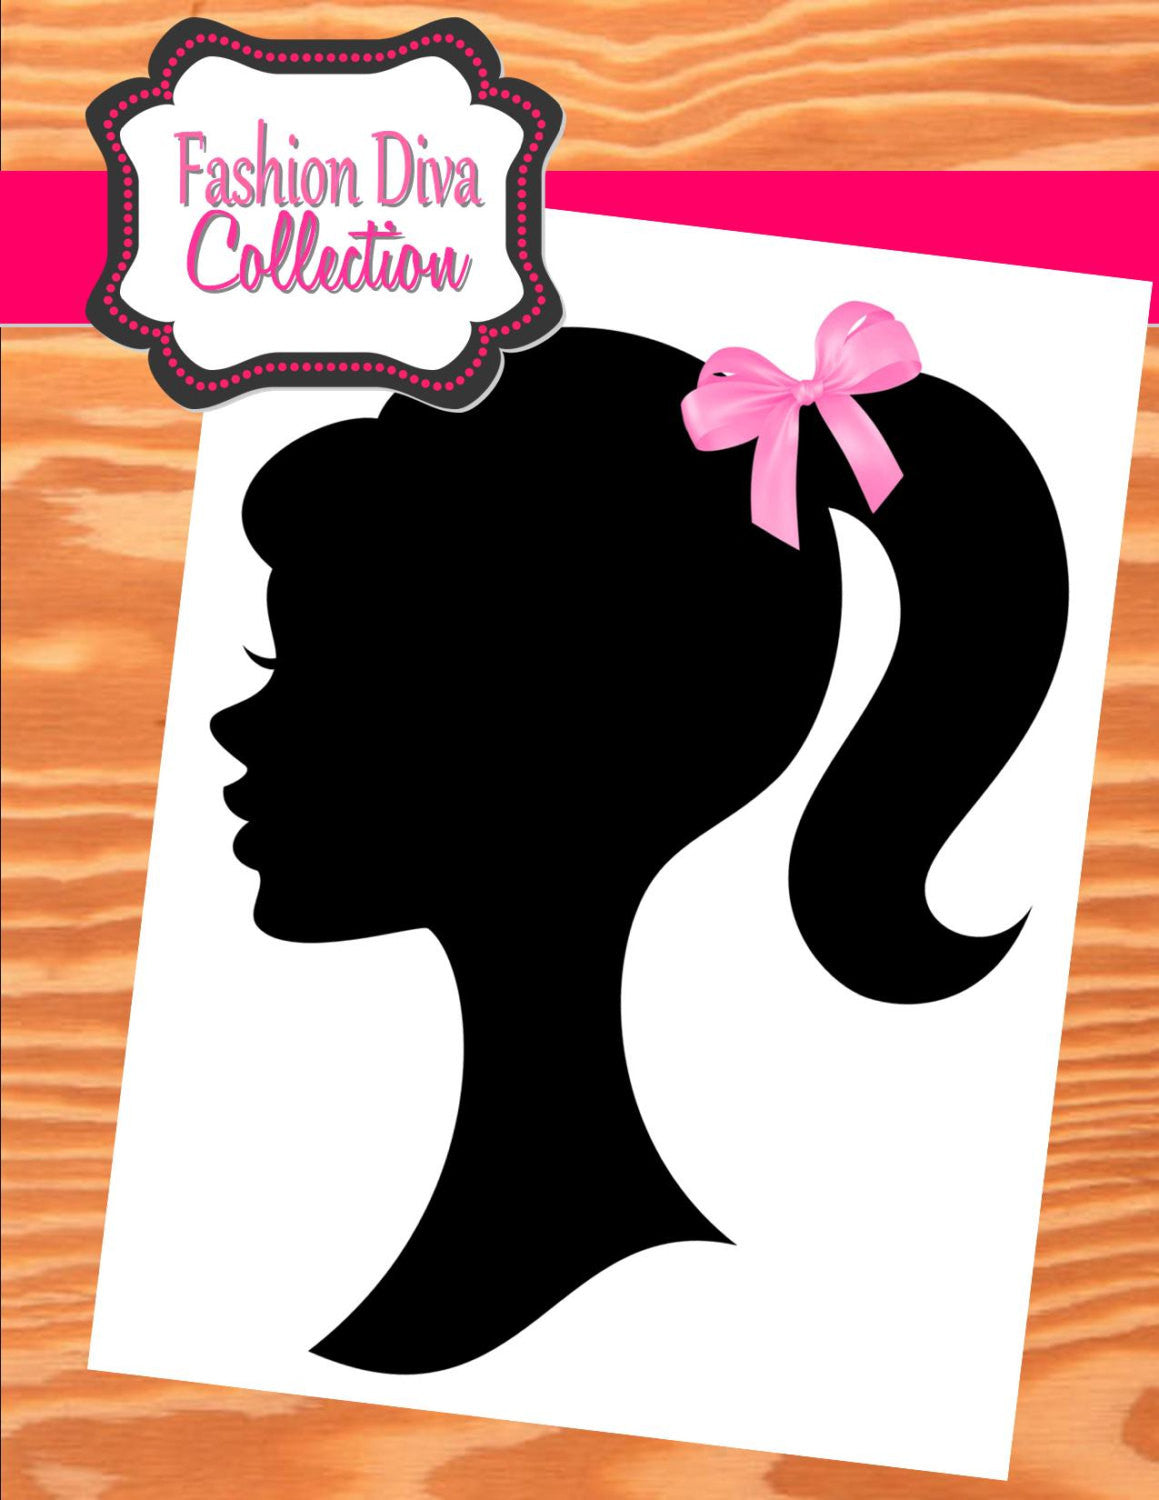 Fashion Diva Party Diva Party Printables Silhouette Krown